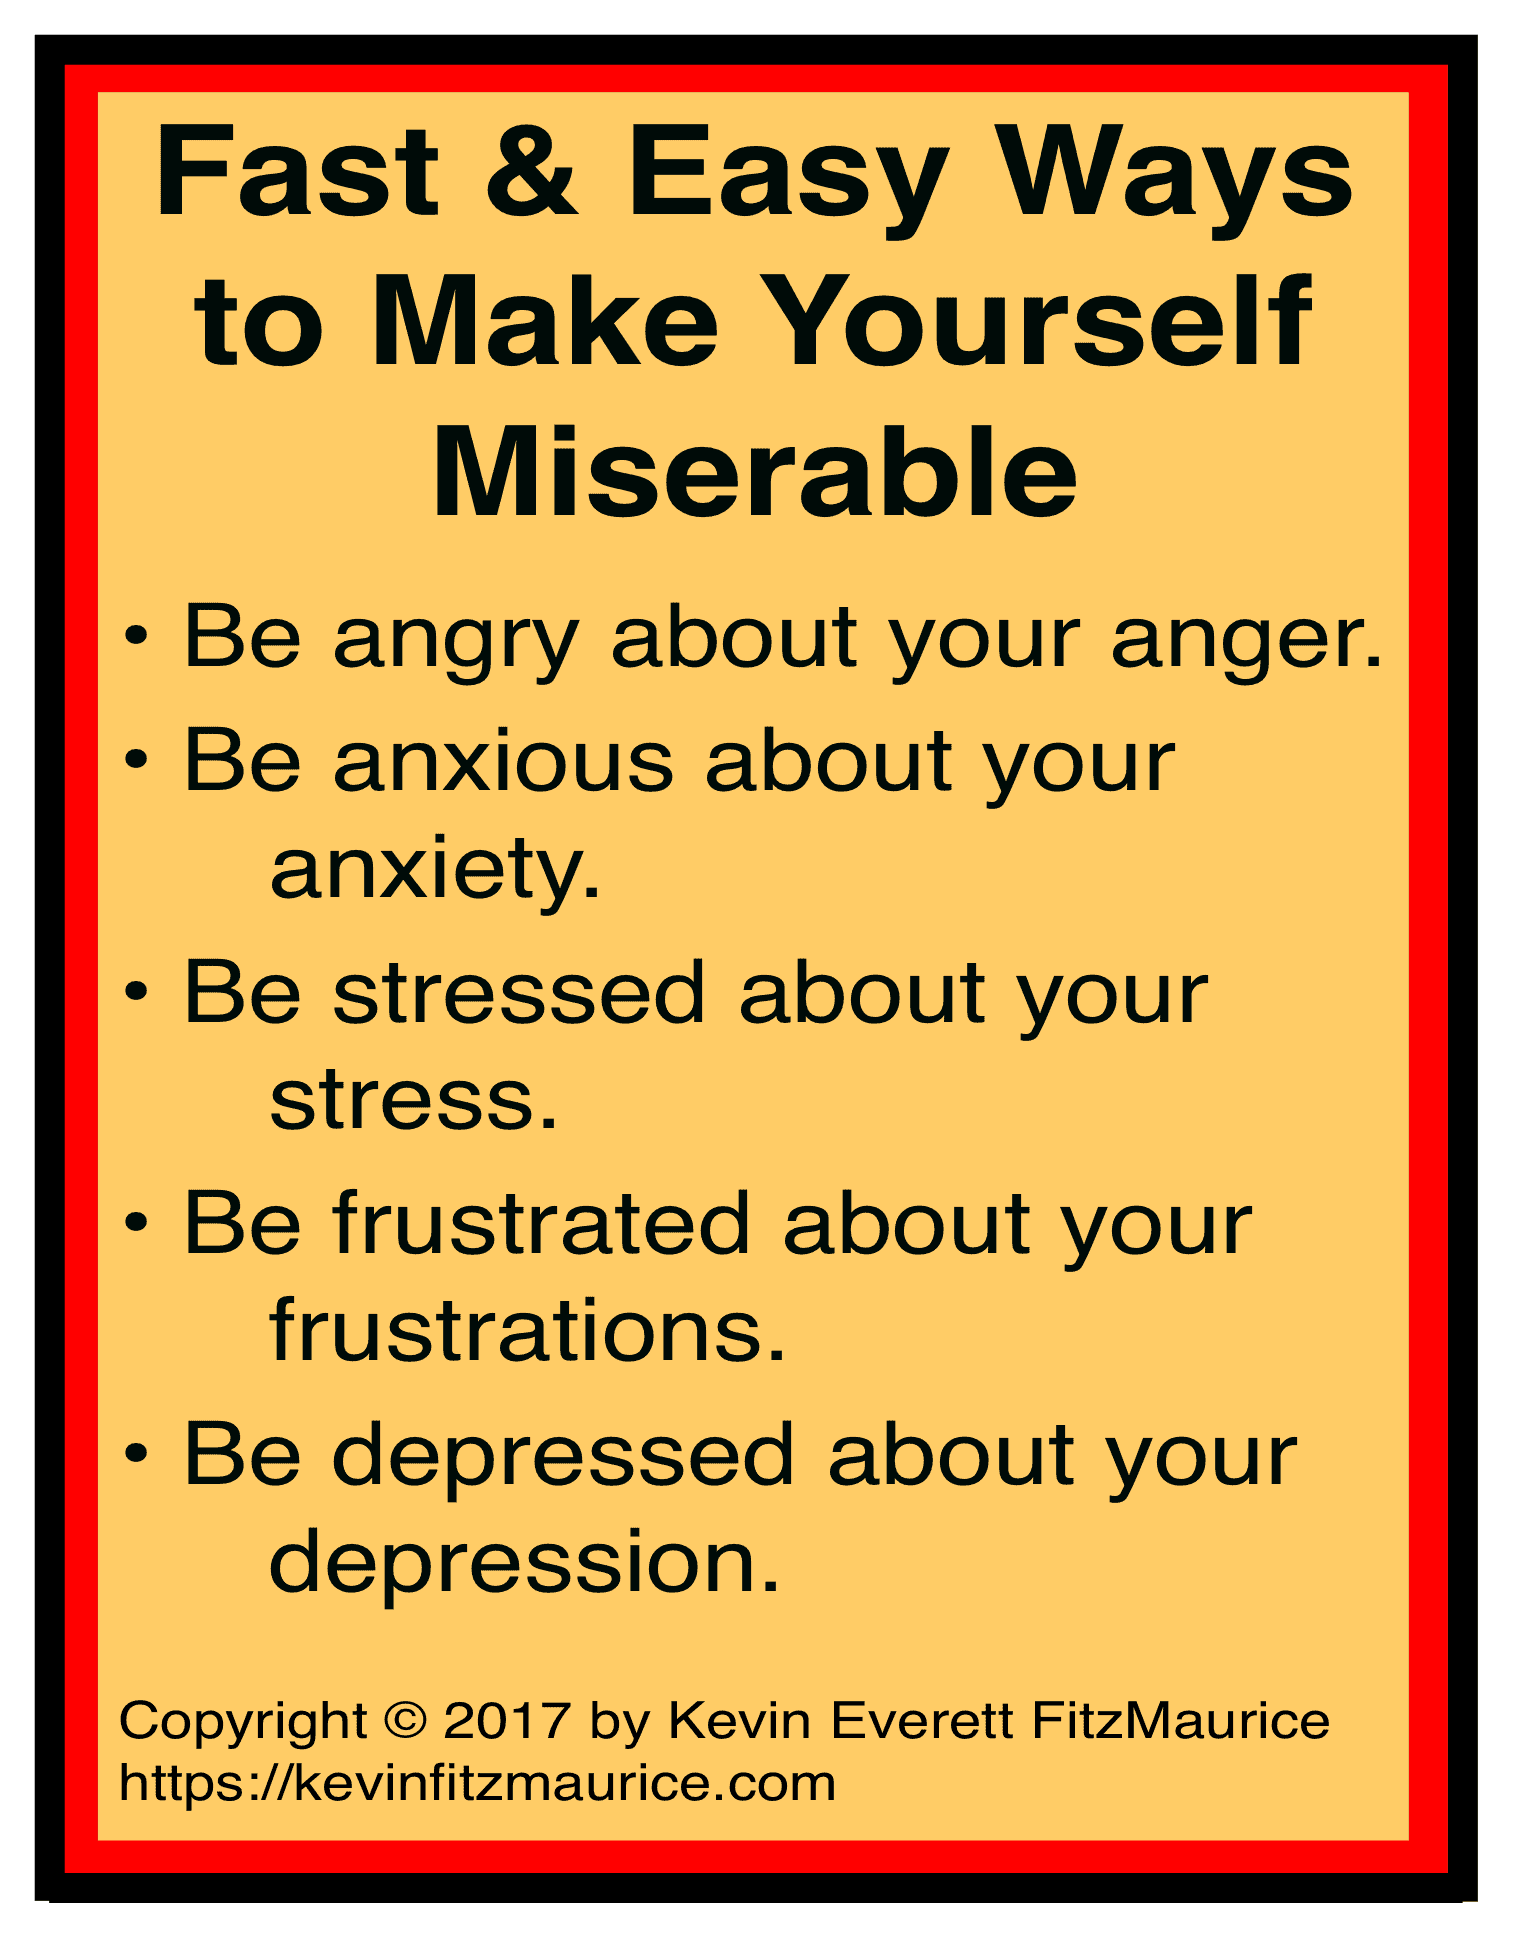 Easy ways to make yourself miserable